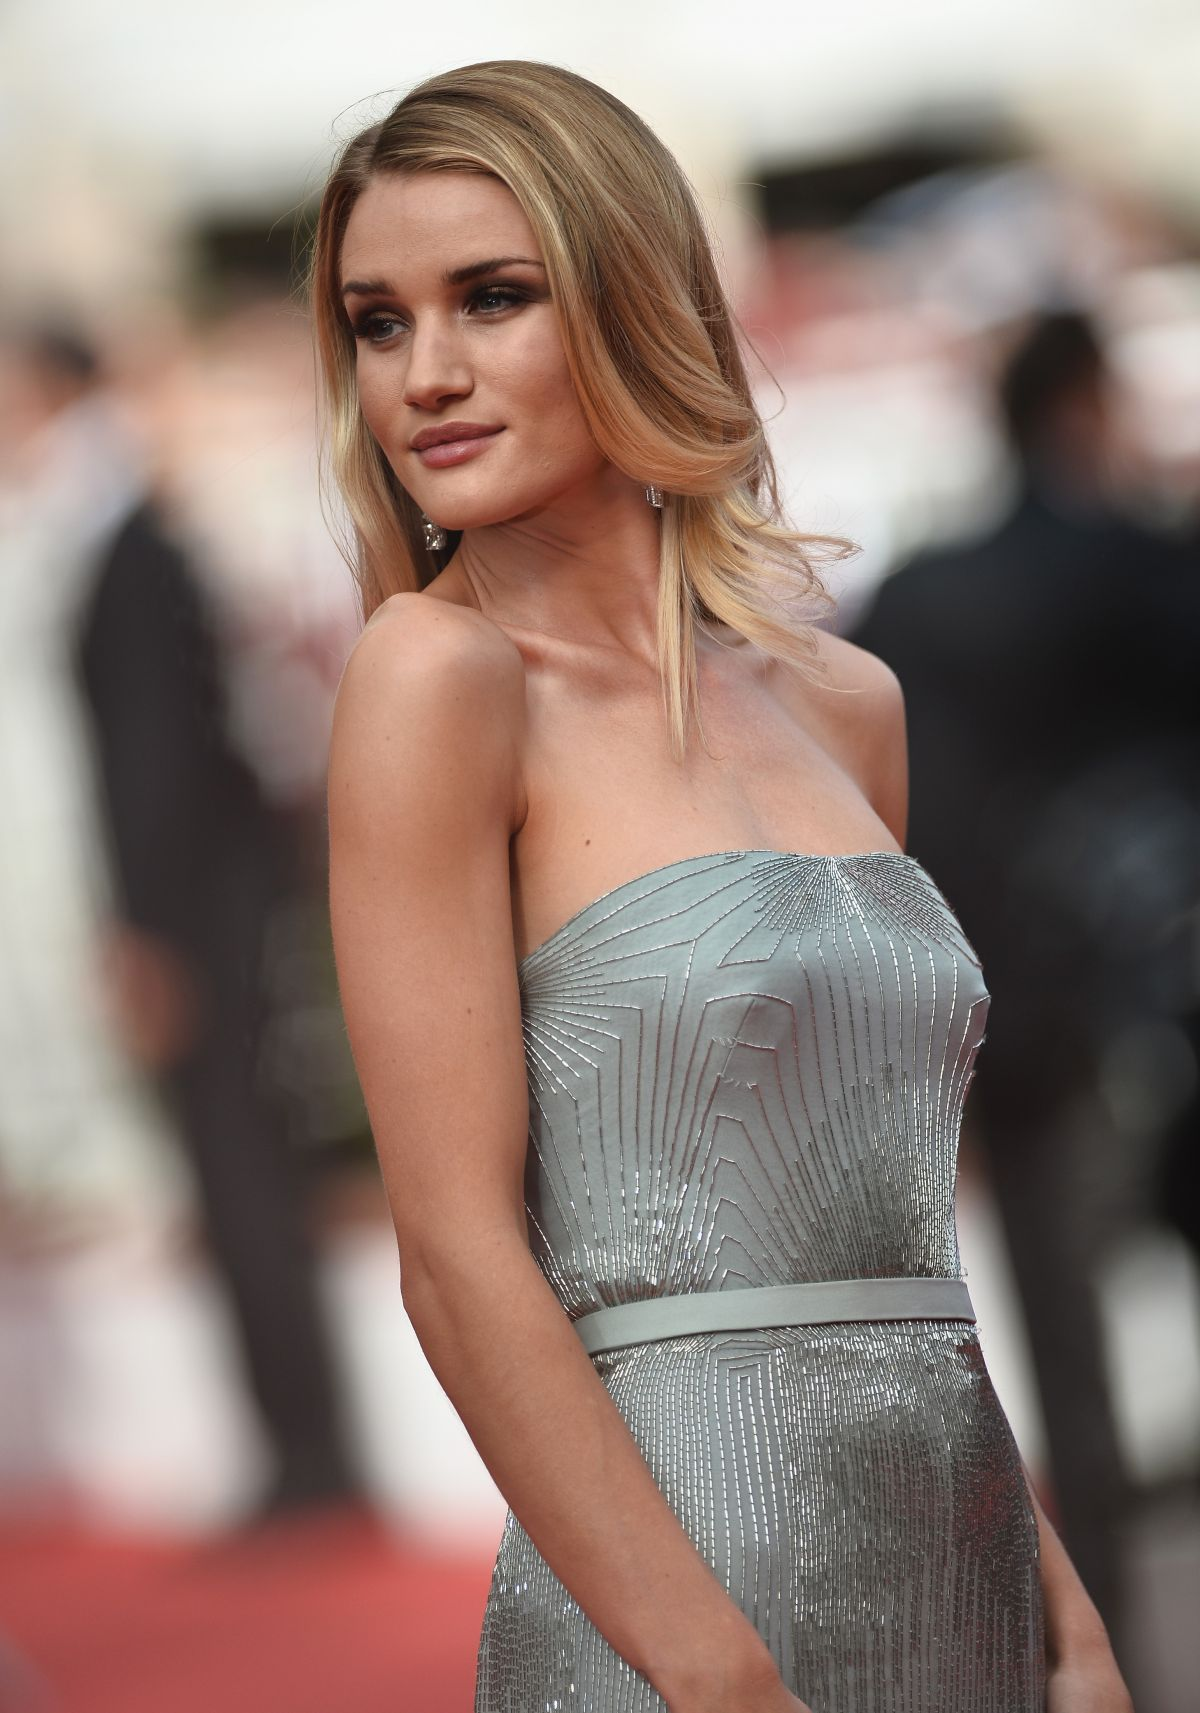 Rosie Huntington Whiteley For Vogue Turkey August 2014: ROSIE HUNTINGTON-WHITELEY At The Search Premiere At Cannes